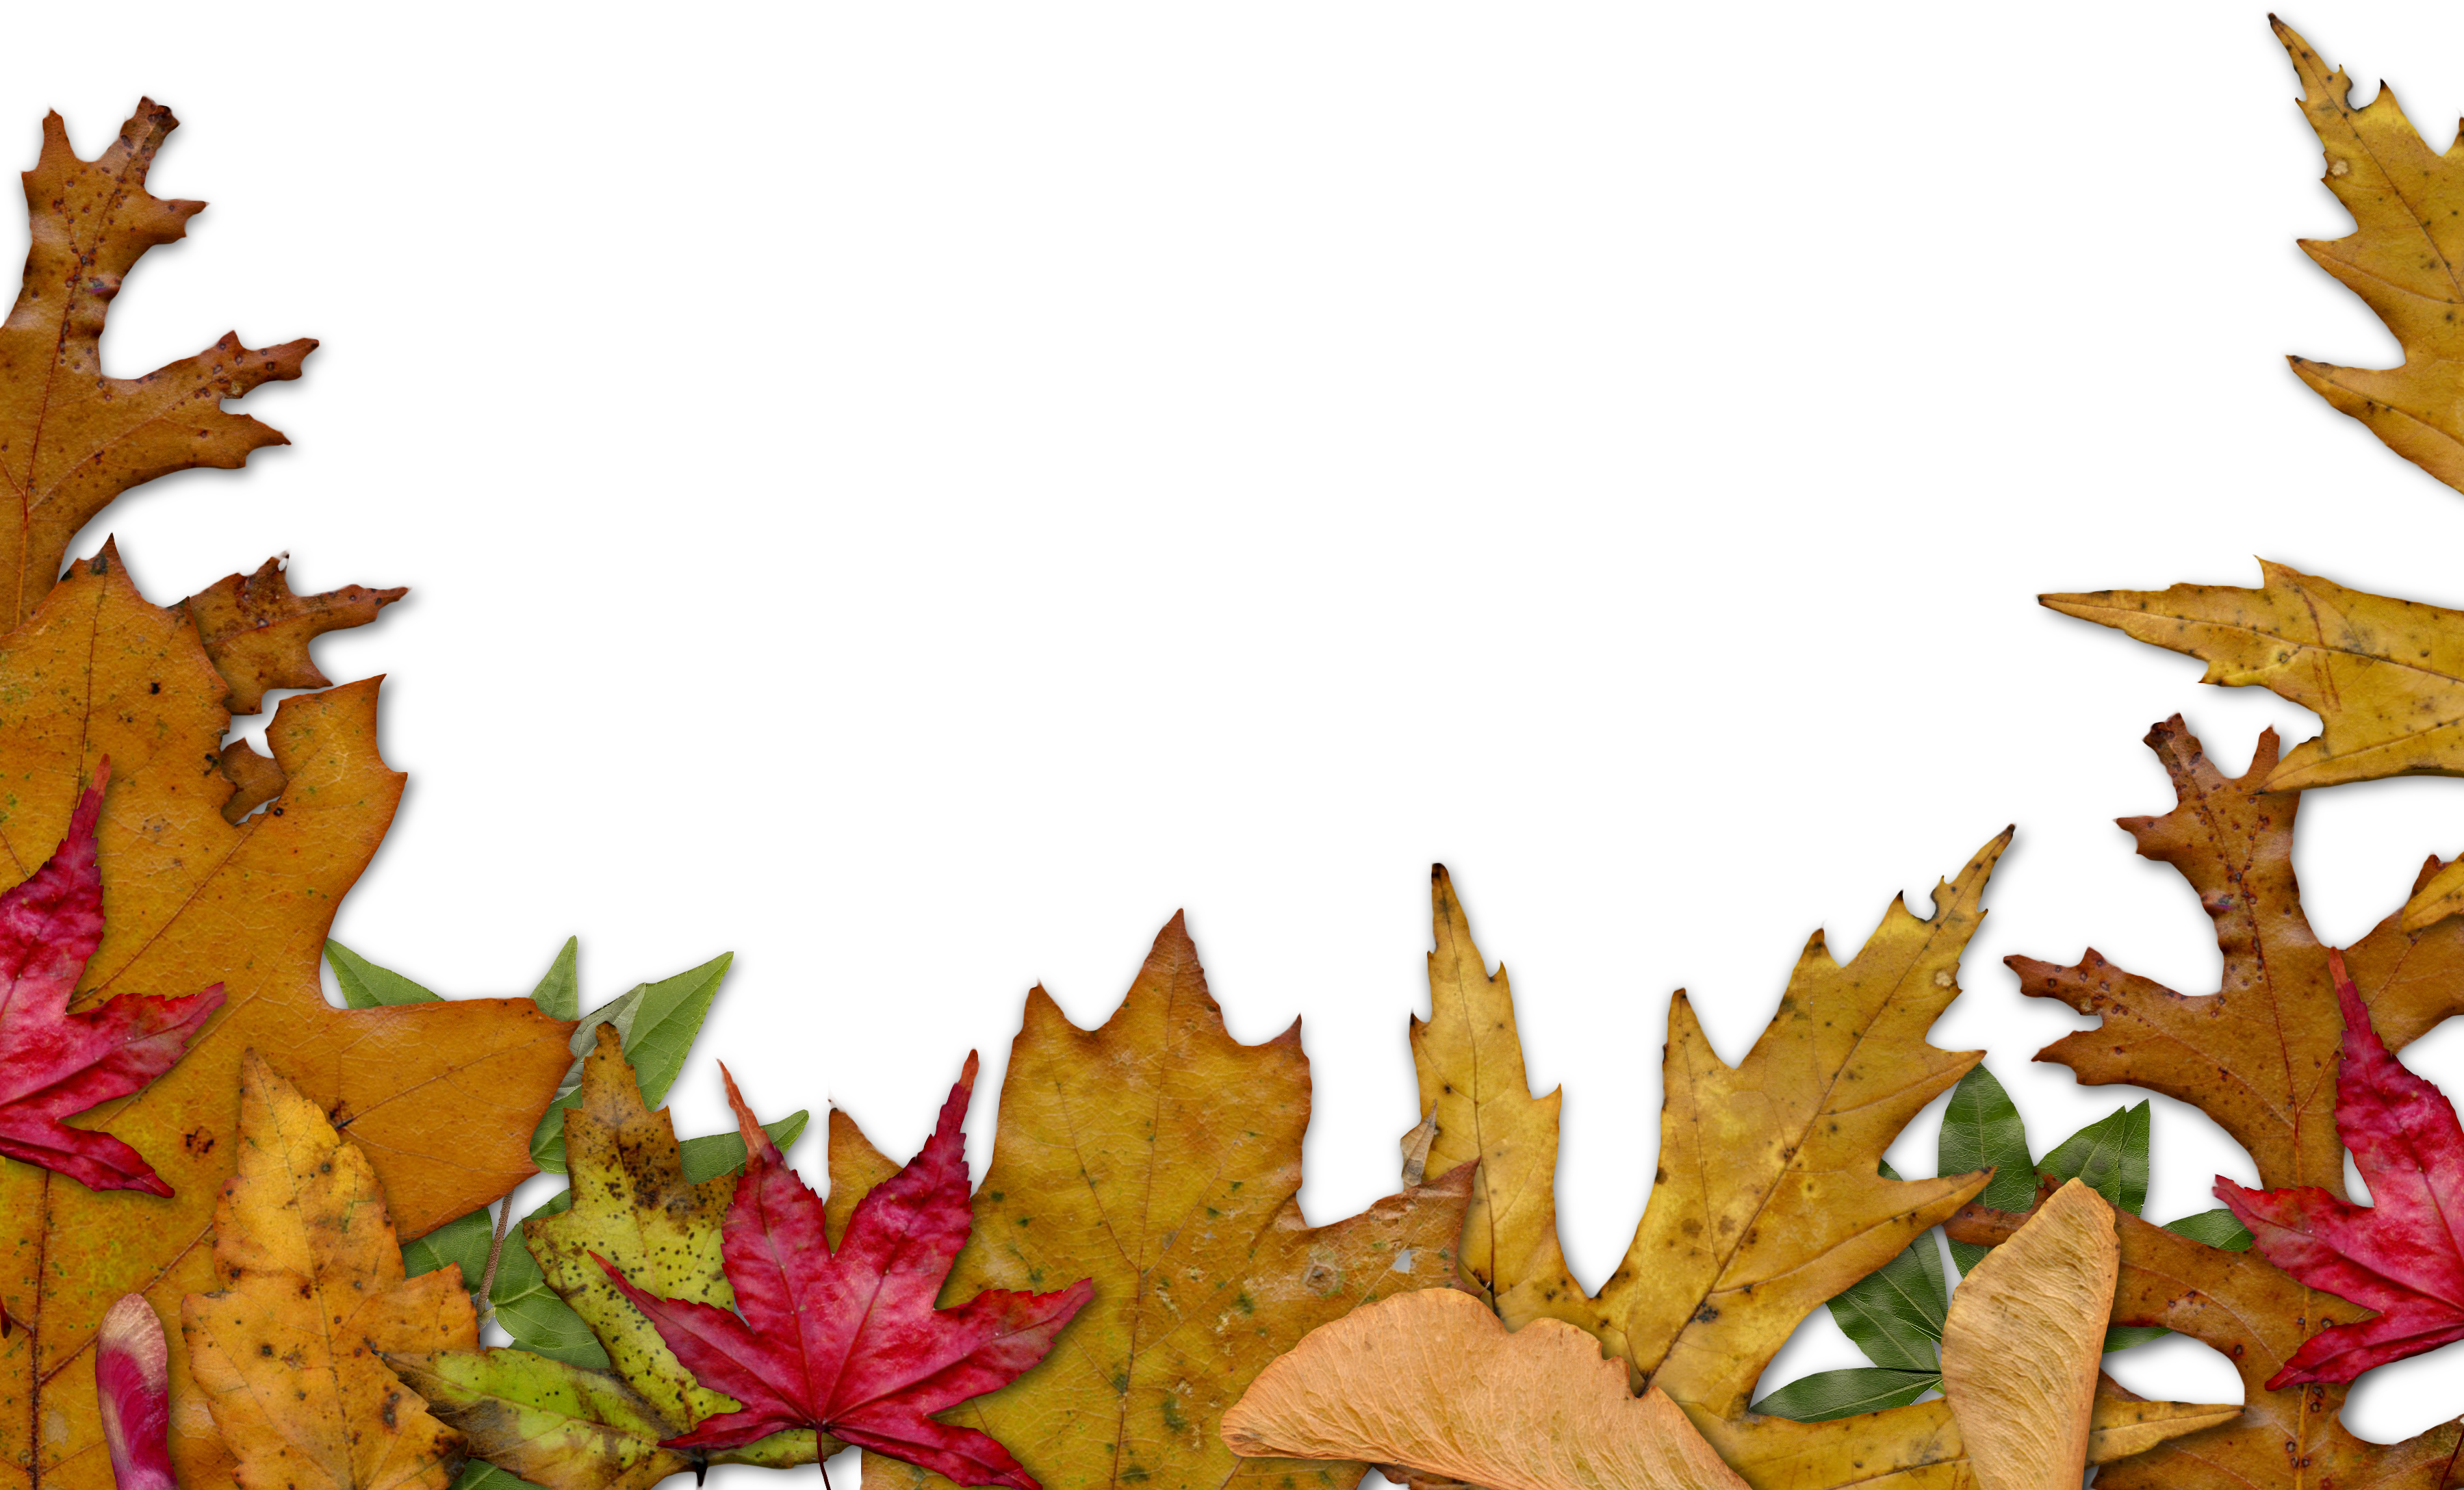 Fall Flower Border Clipart - Clipart Suggest